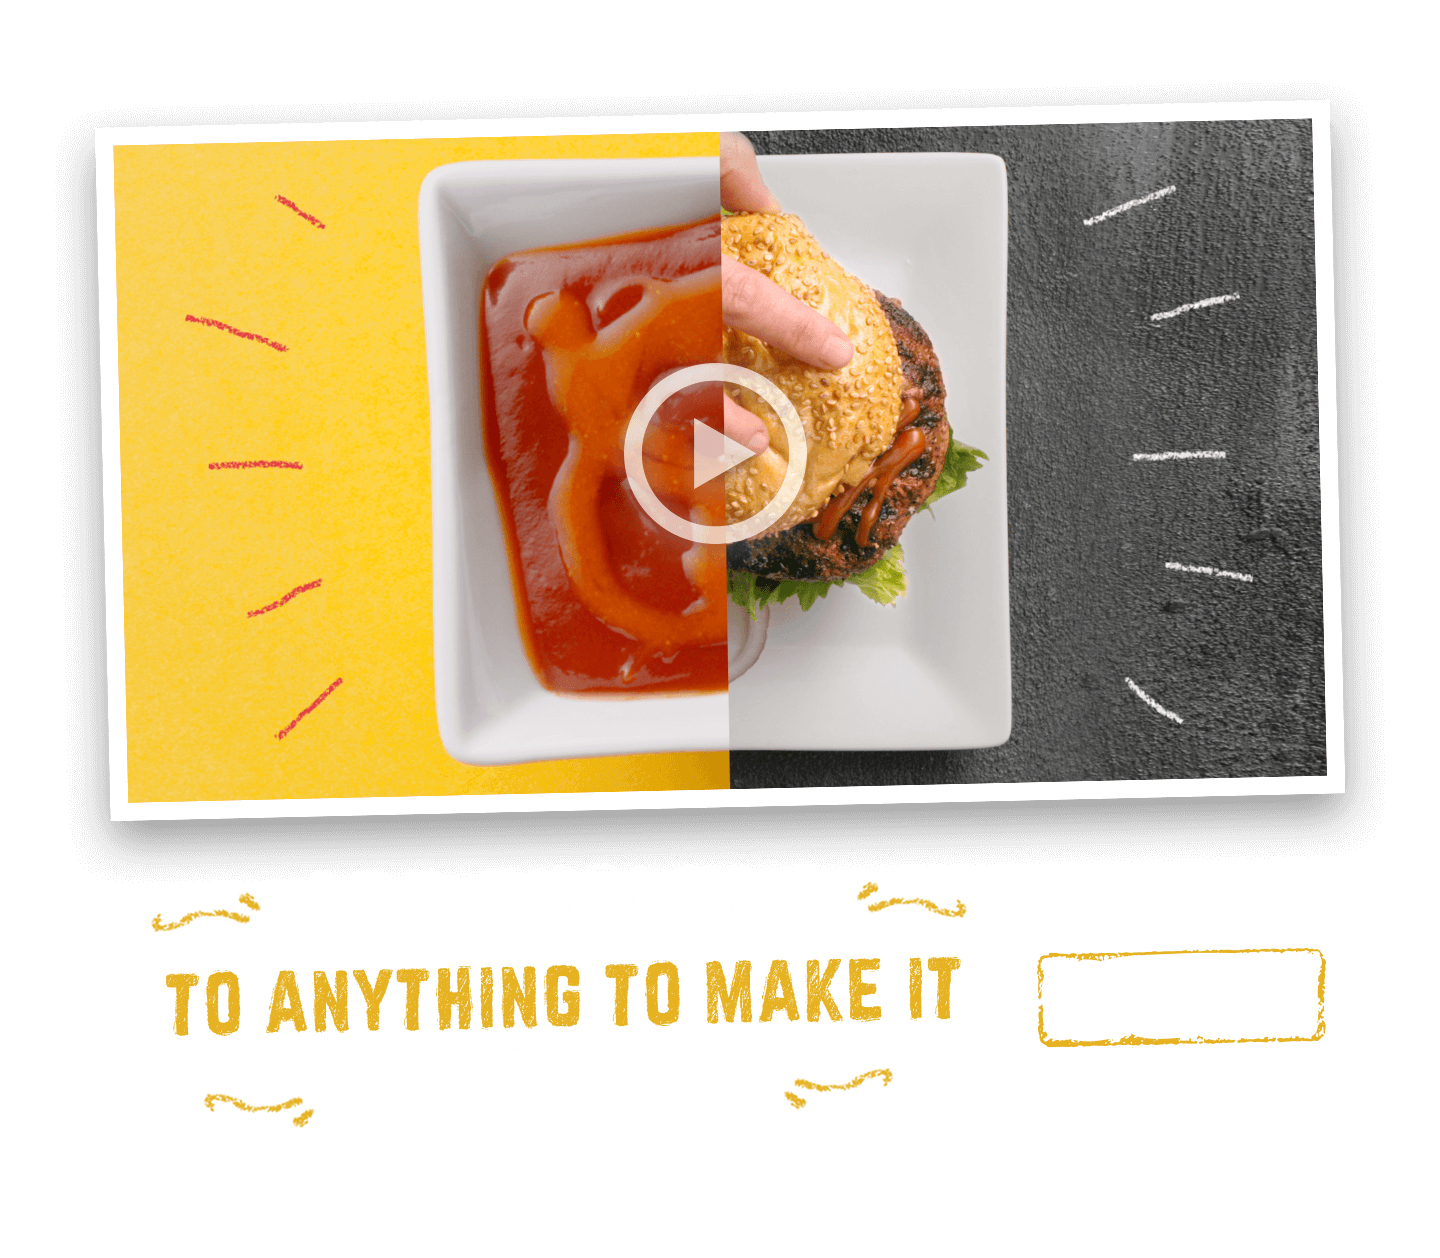 Add Cholula To Anything And Make It Your Own